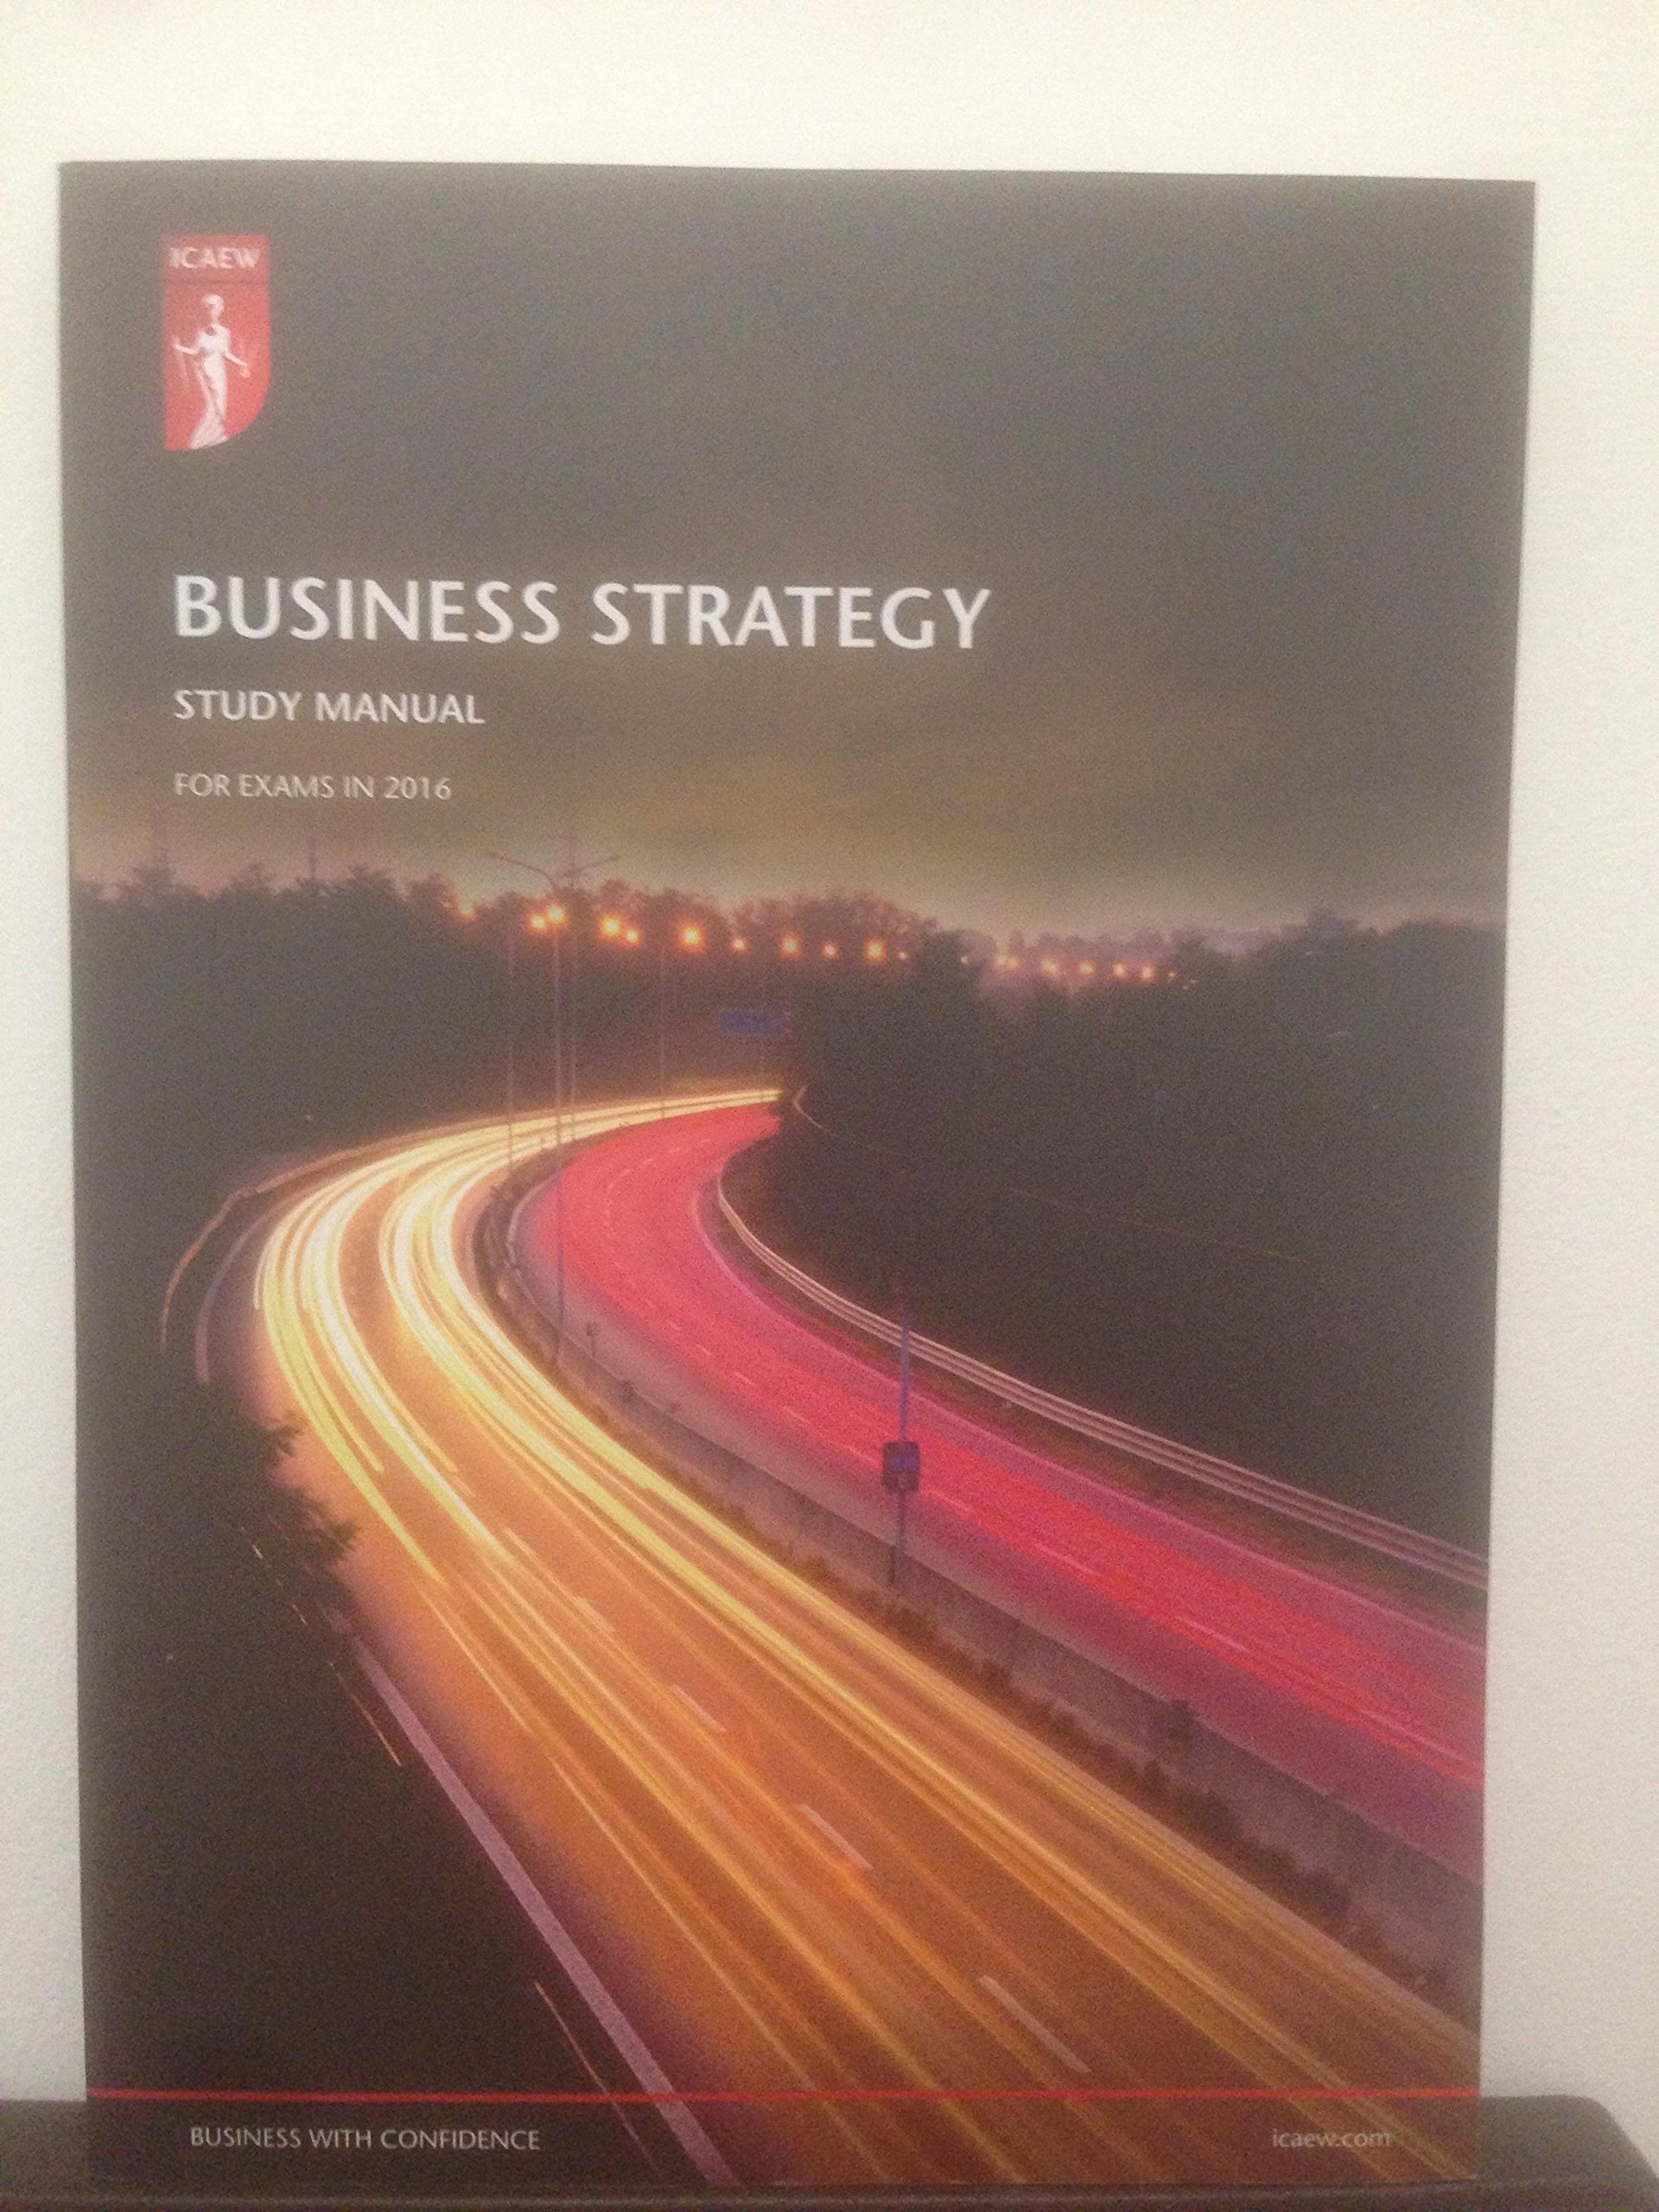 ICAEW Business Strategy study manual for exams in 2016: ICAEW:  9781783632121: Amazon.com: Books